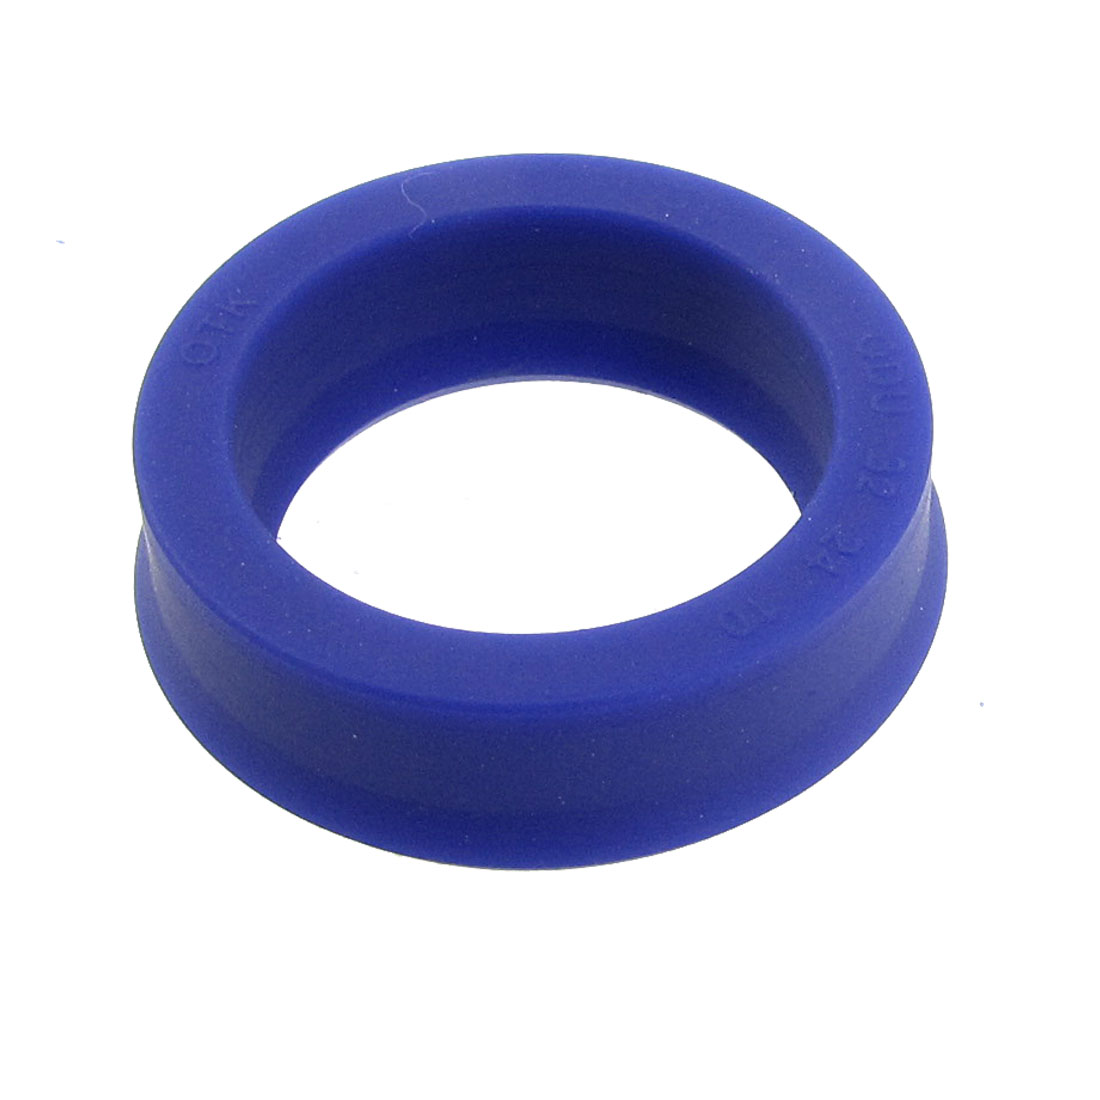 32mm x 24mm x 10mm Blue Polyurethane Piston Oil Seal Ring